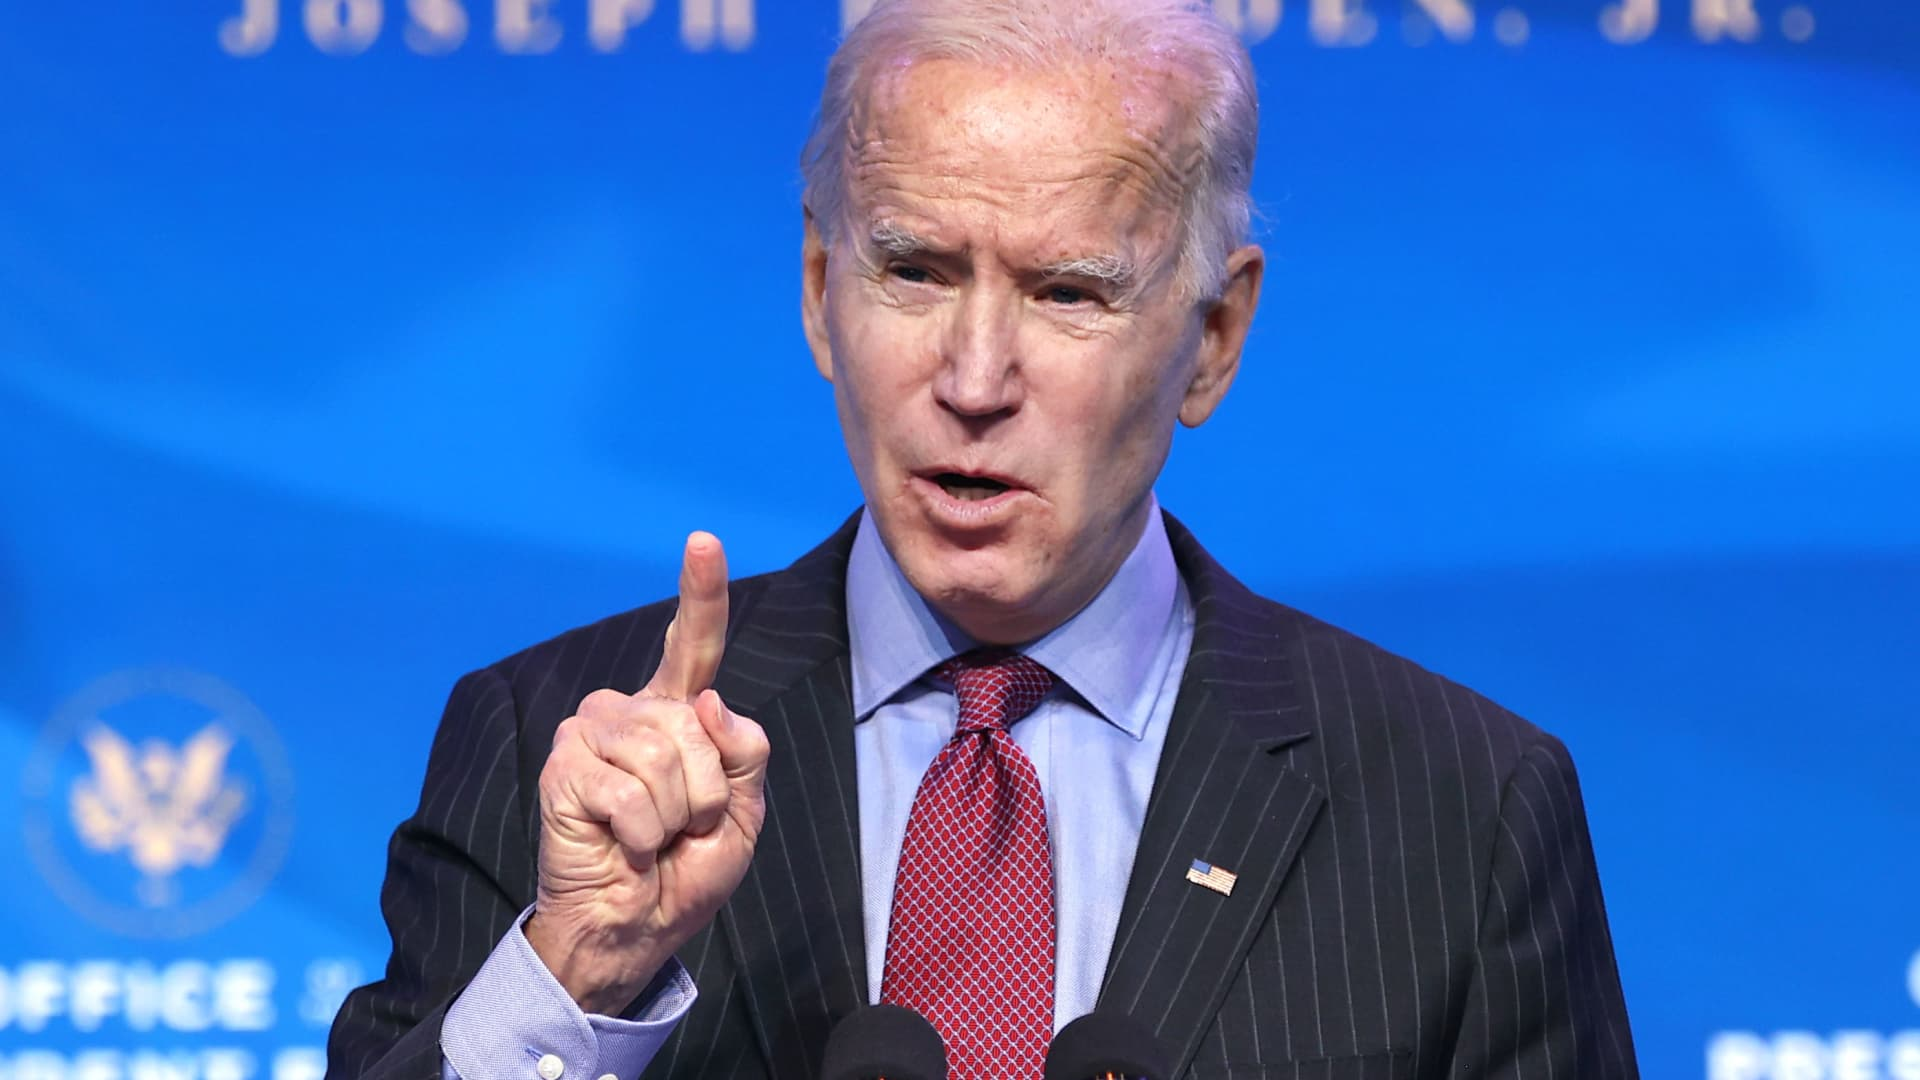 U.S. President-elect Joe Biden delivers remarks after he announced cabinet nominees that will round out his economic team, including secretaries of commerce and labor, at The Queen theater on January 08, 2021 in Wilmington, Delaware.